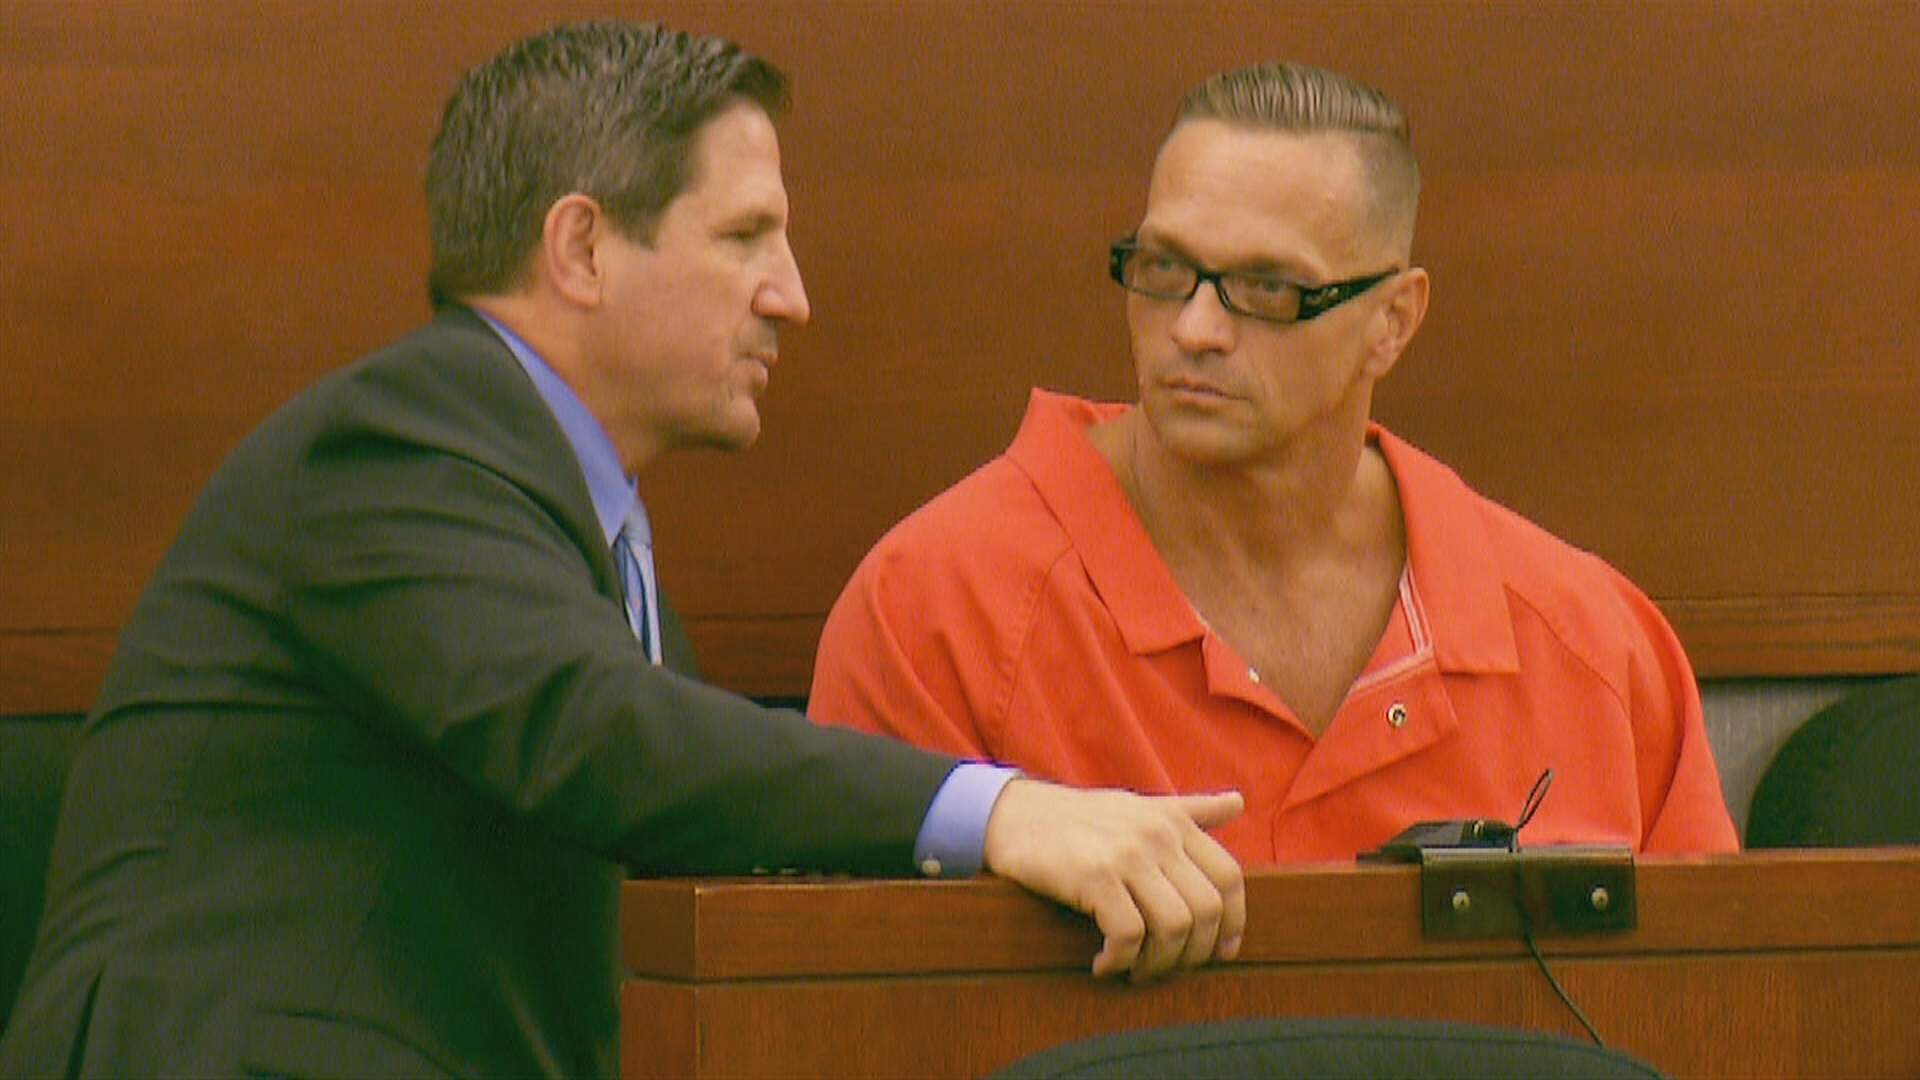 Scott Dozier appears in court Monday, September 11, 2017, at the Regional Justice Center in Las Vegas. (George Romero/KSNV)